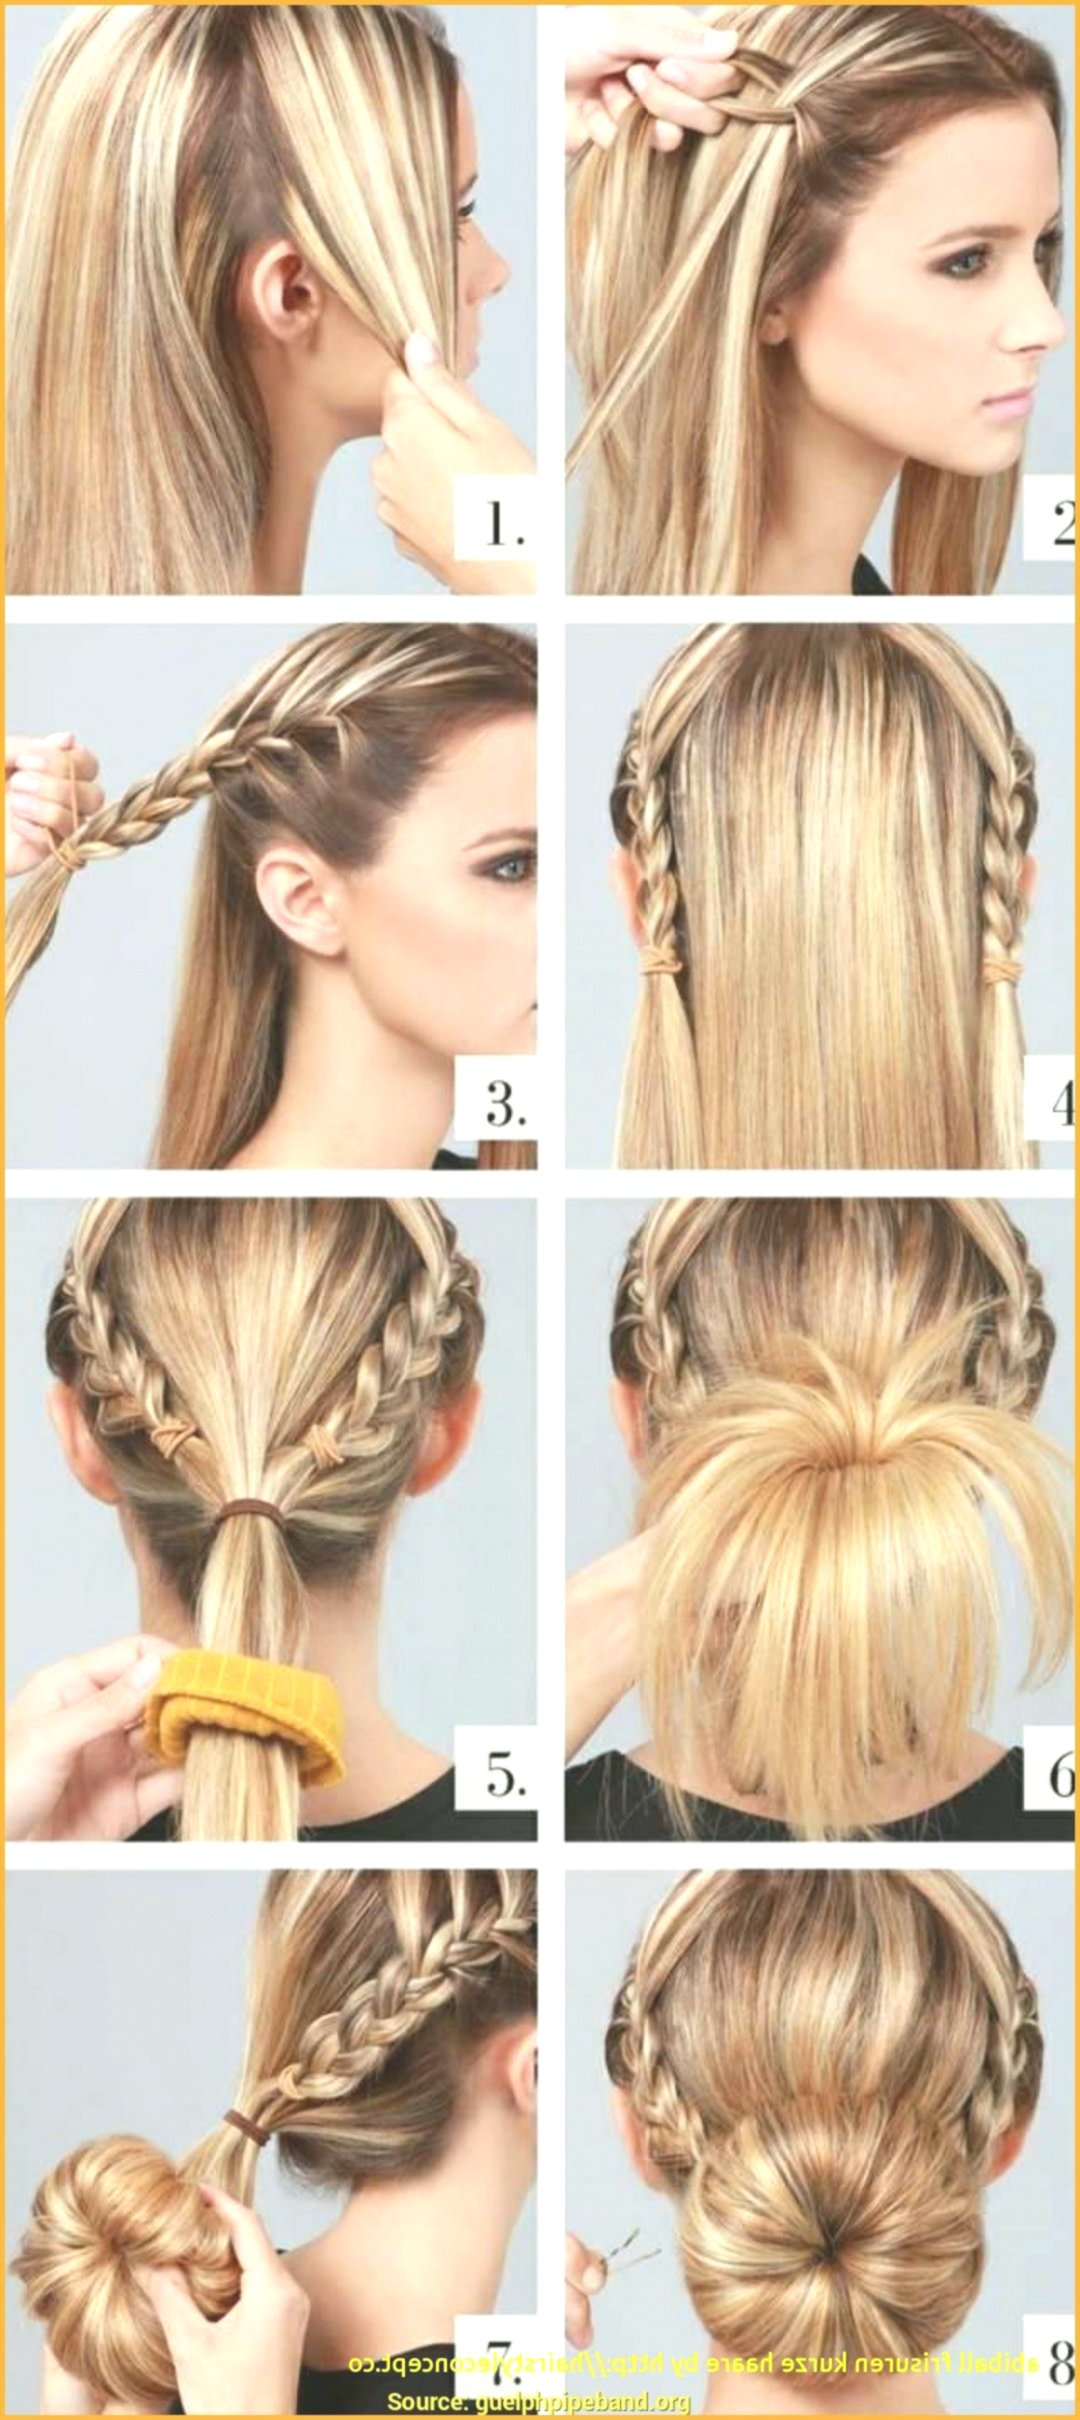 terribly cool hairstyles shoulder-length hair plan-fancy hairstyles shoulder-length hair design